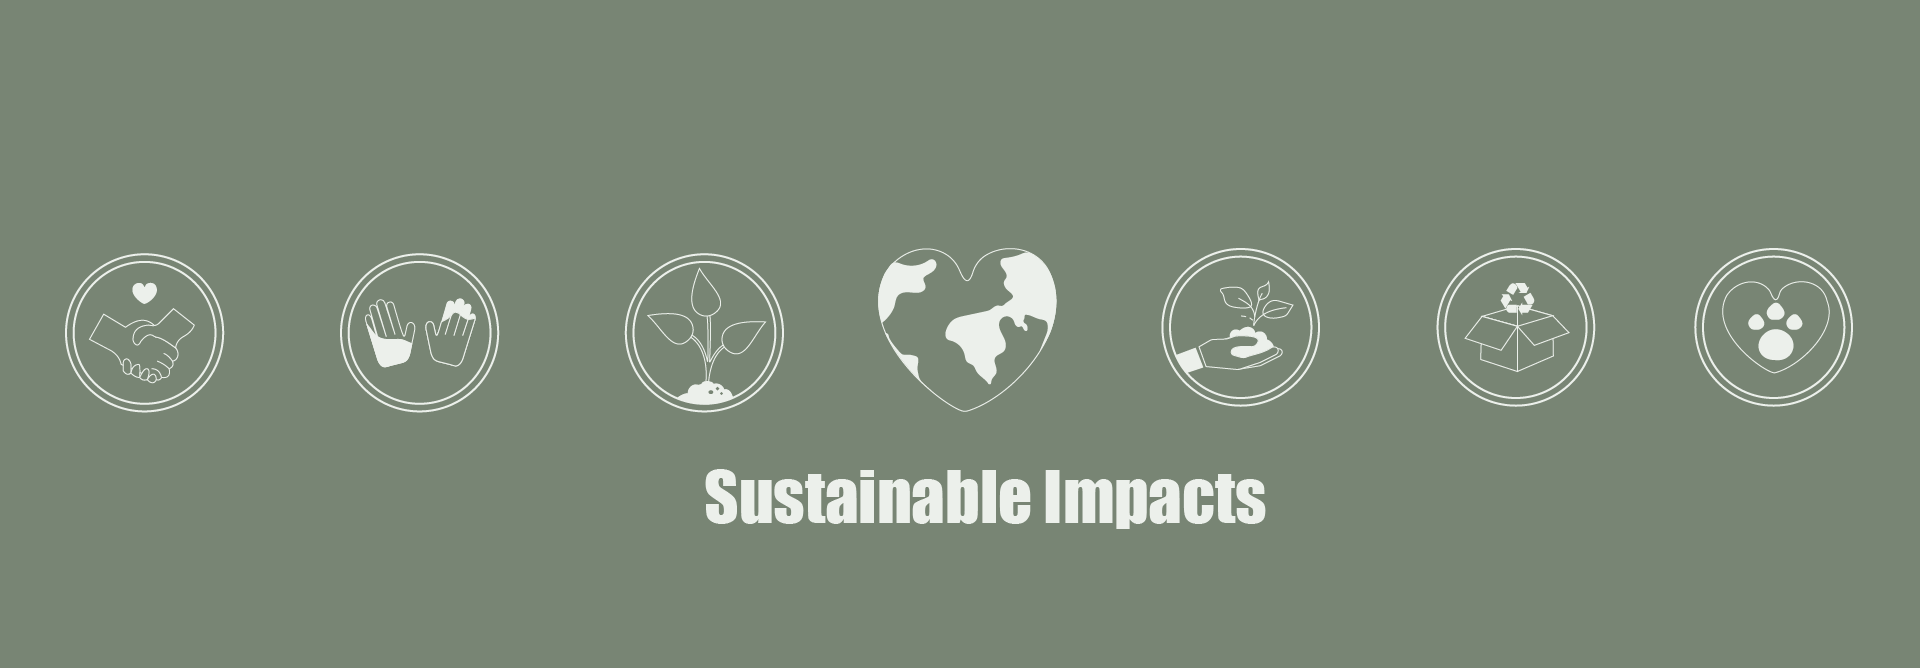 sustainable impacts